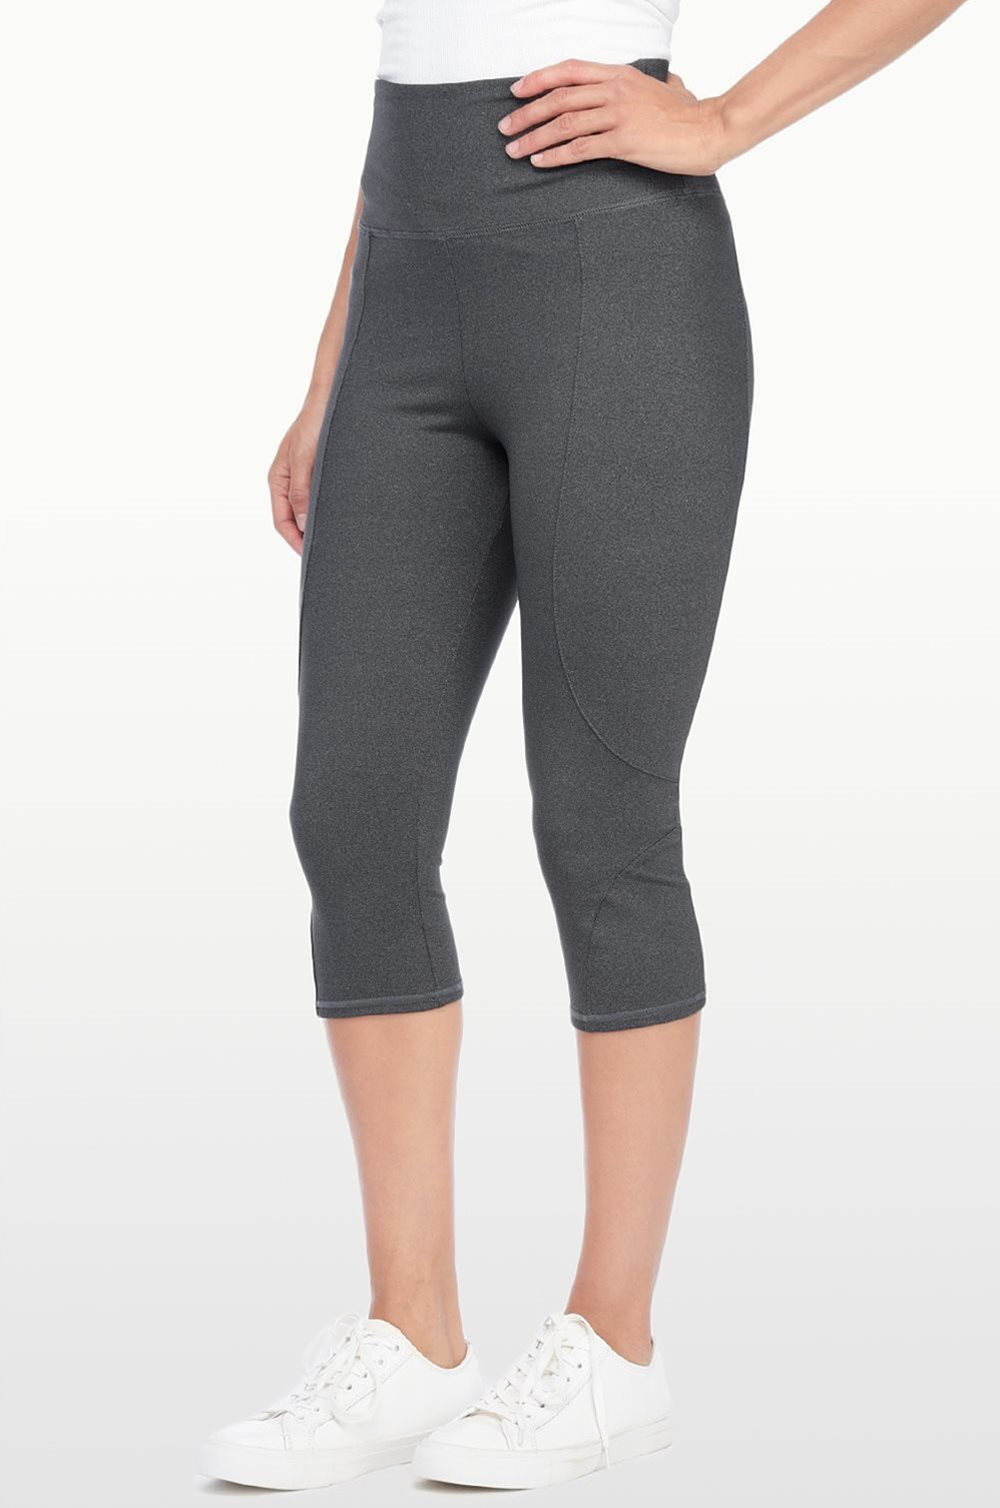 Nydj City/sport Slimming Yoga Crop in Gray